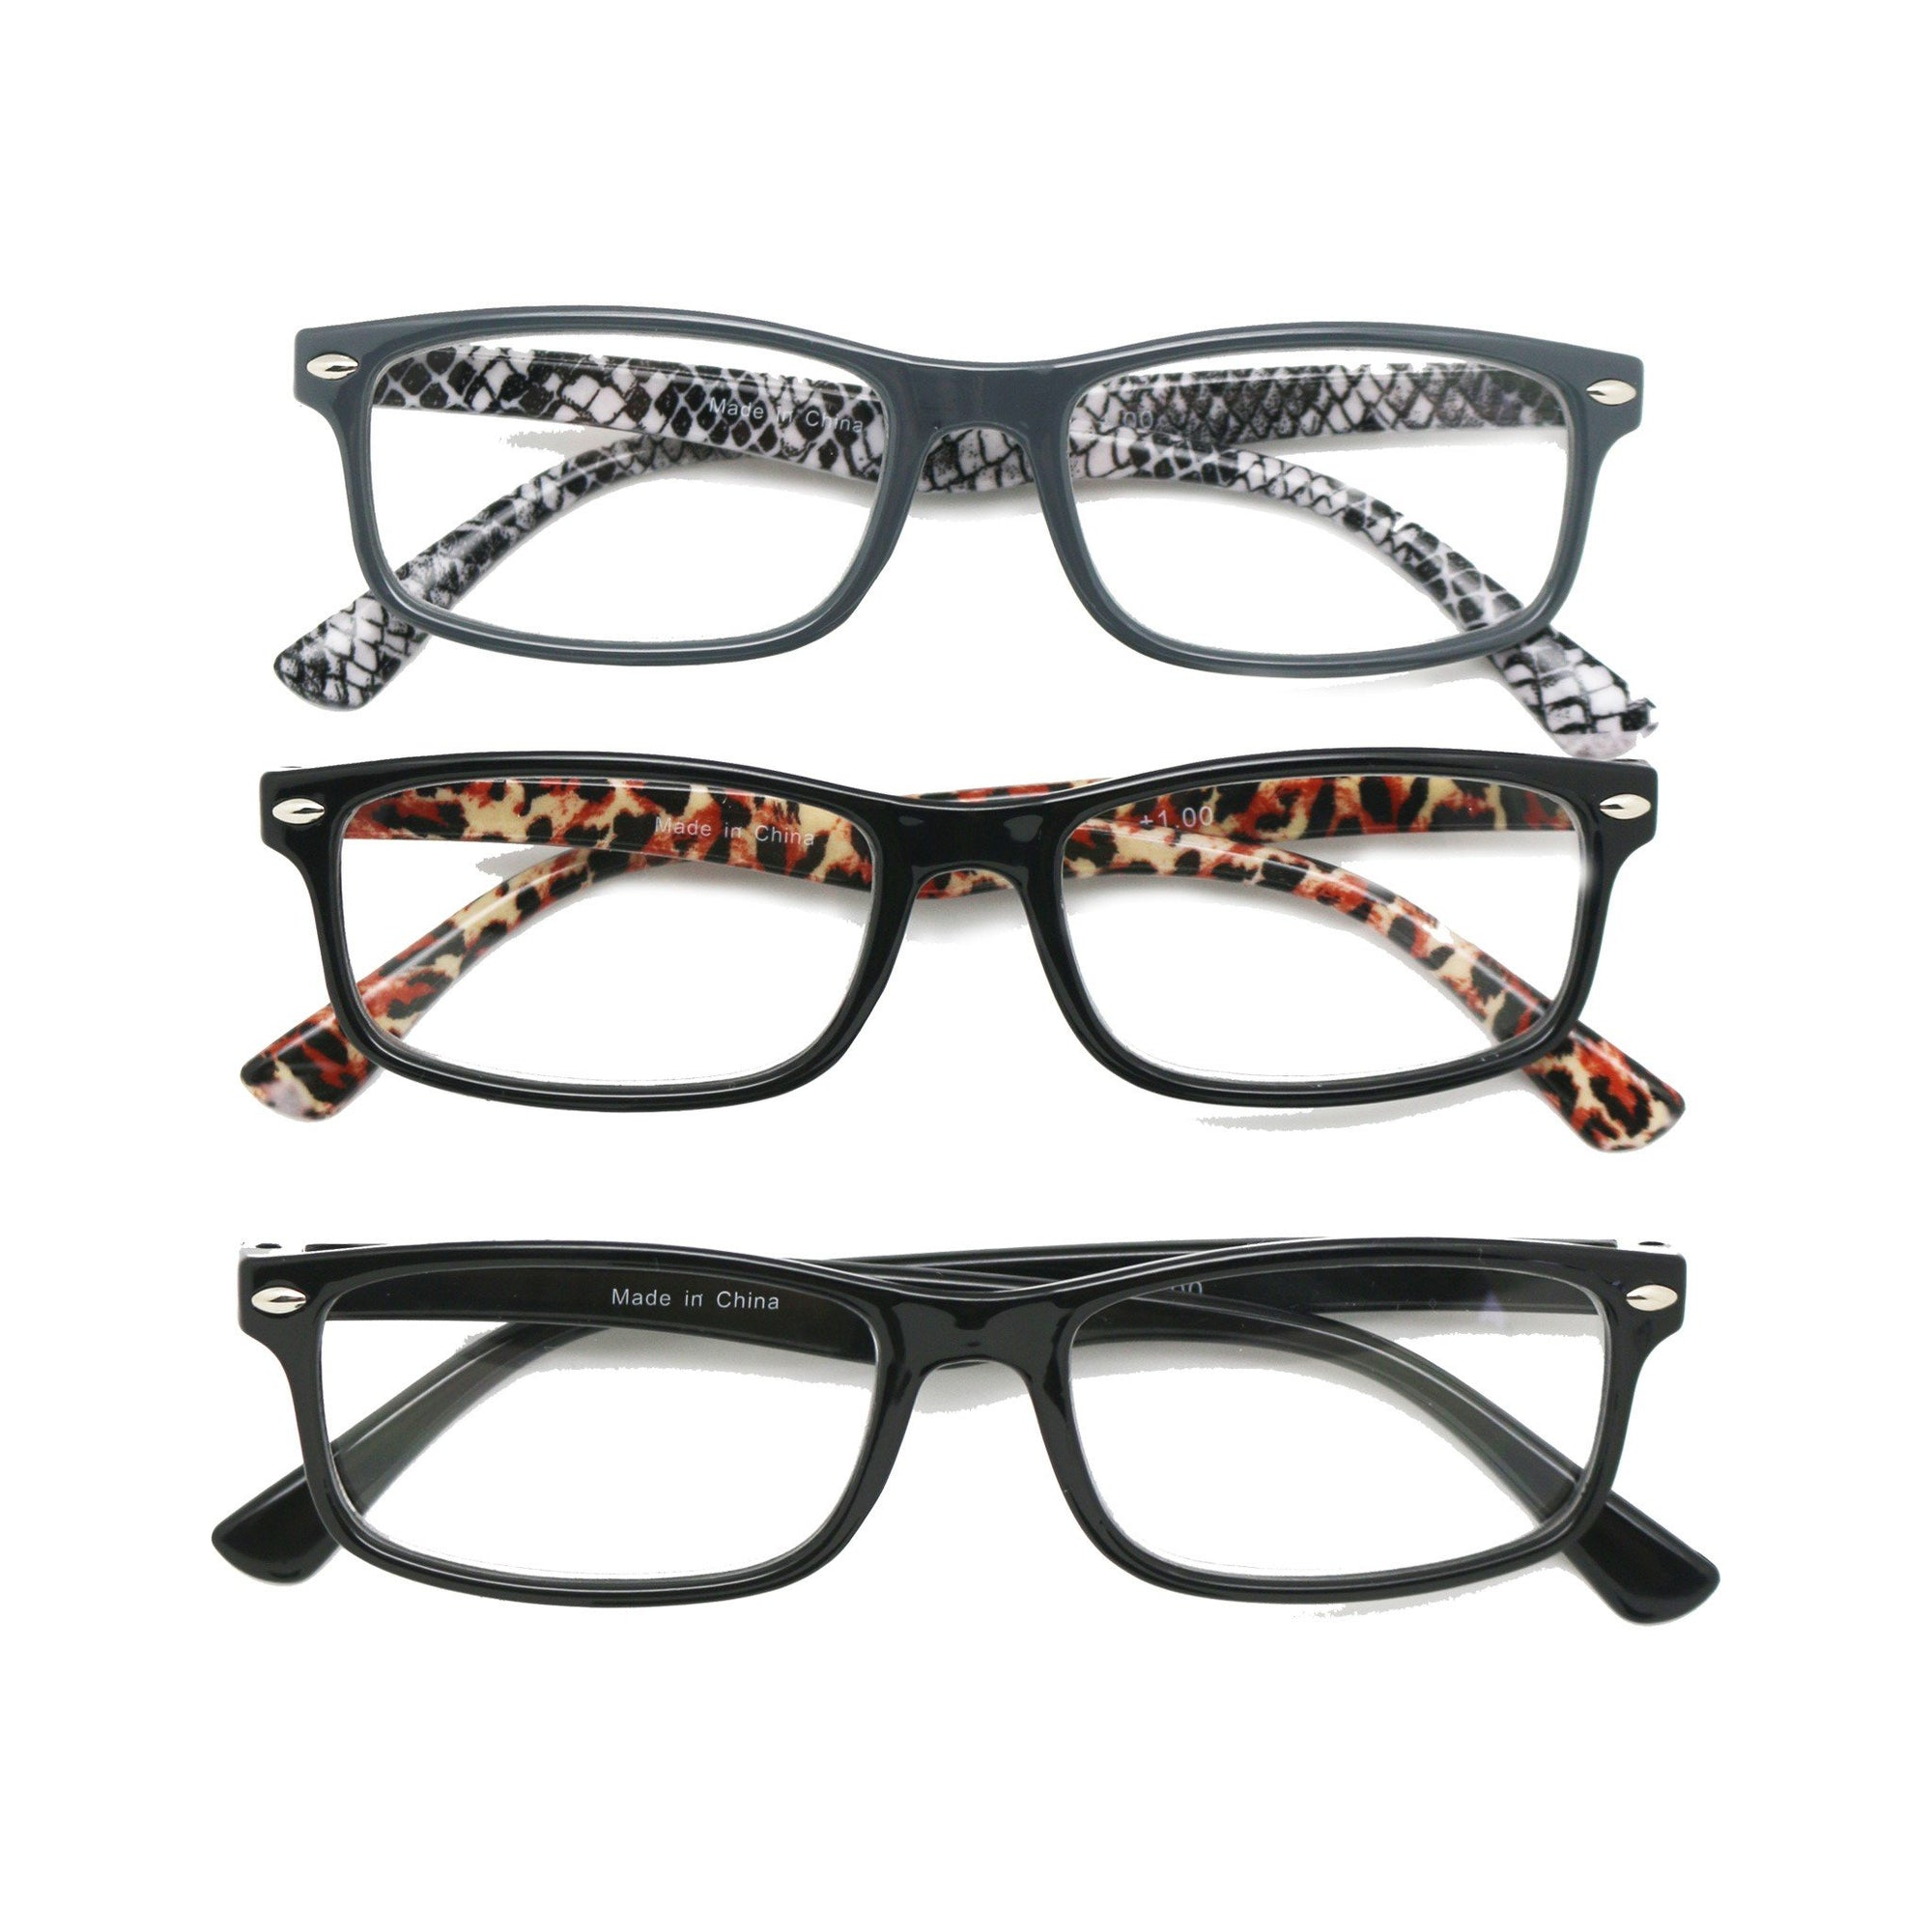 Casa Womens Reading Glasses +2.0 Magnification 3pk